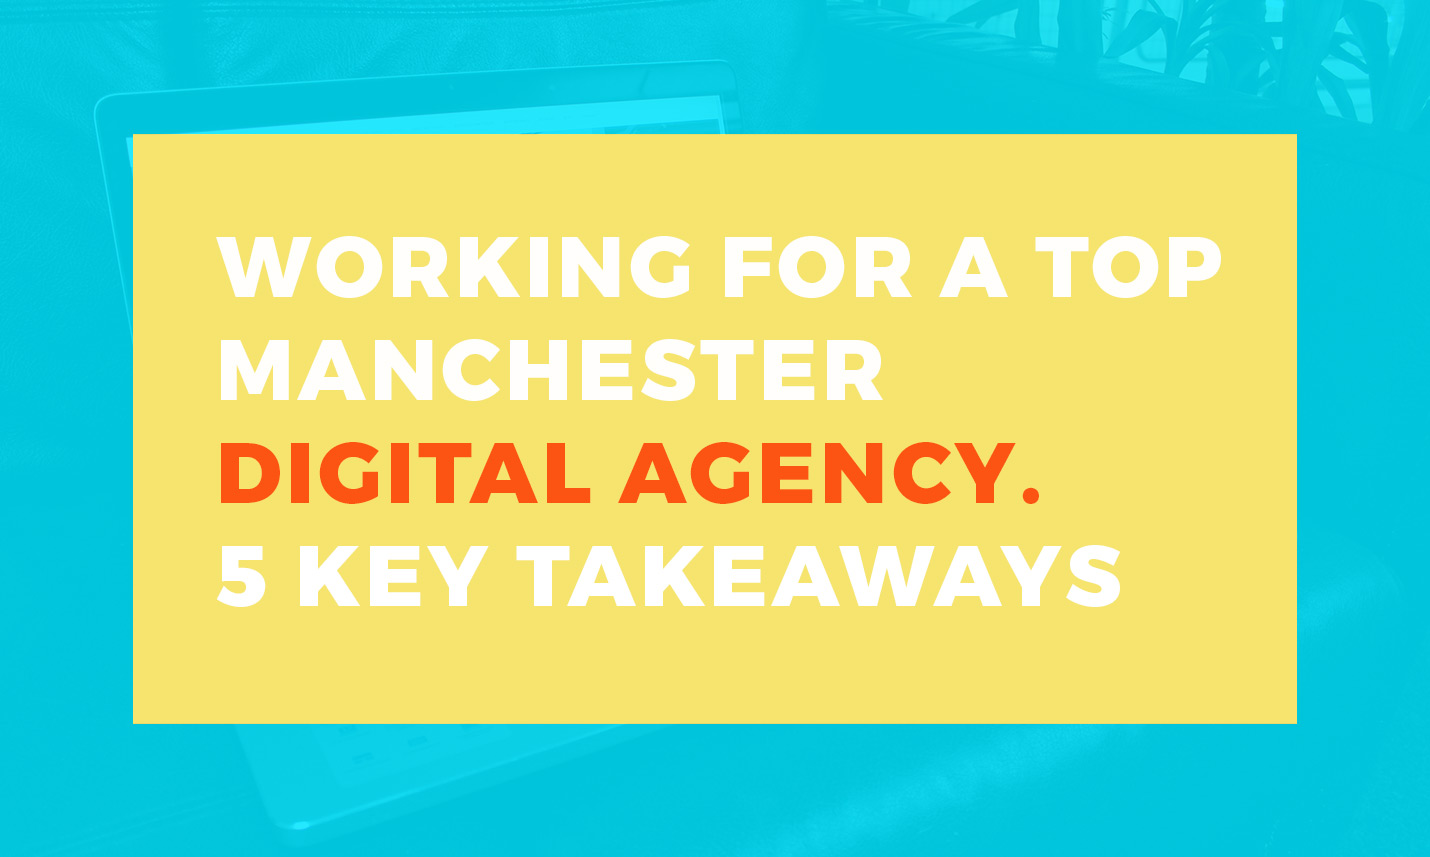 Working for a top Manchester digital agency - key takeaways